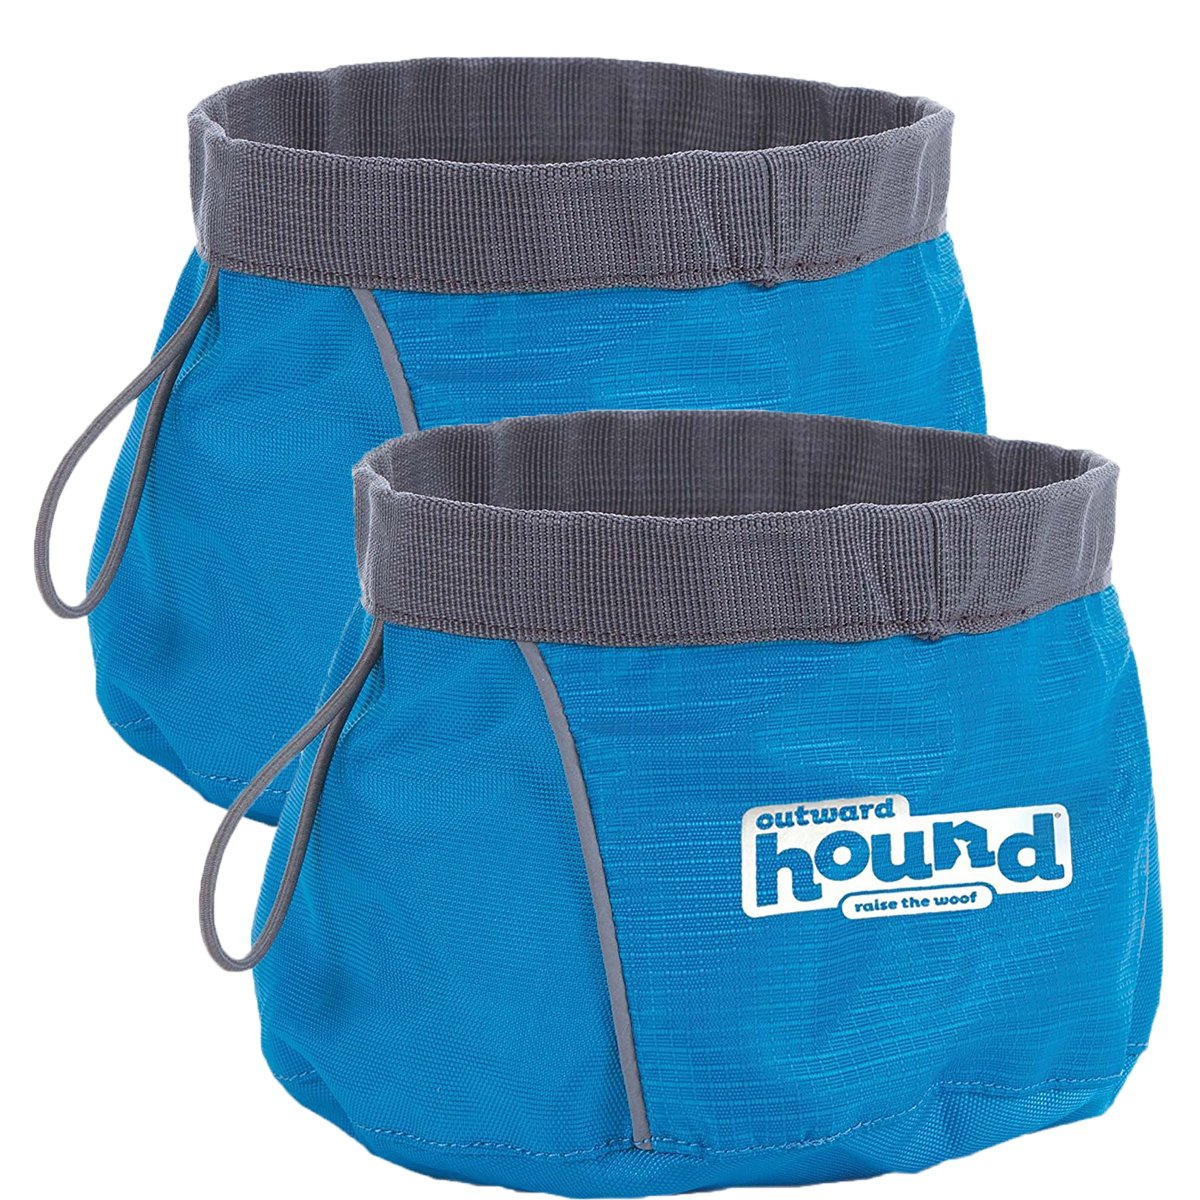 Port a Bowl Collapsible Hiking and Travel Folding Food and Water Bowl for Dogs by Outward Hound, Large (2 Pack) by Outward Hound